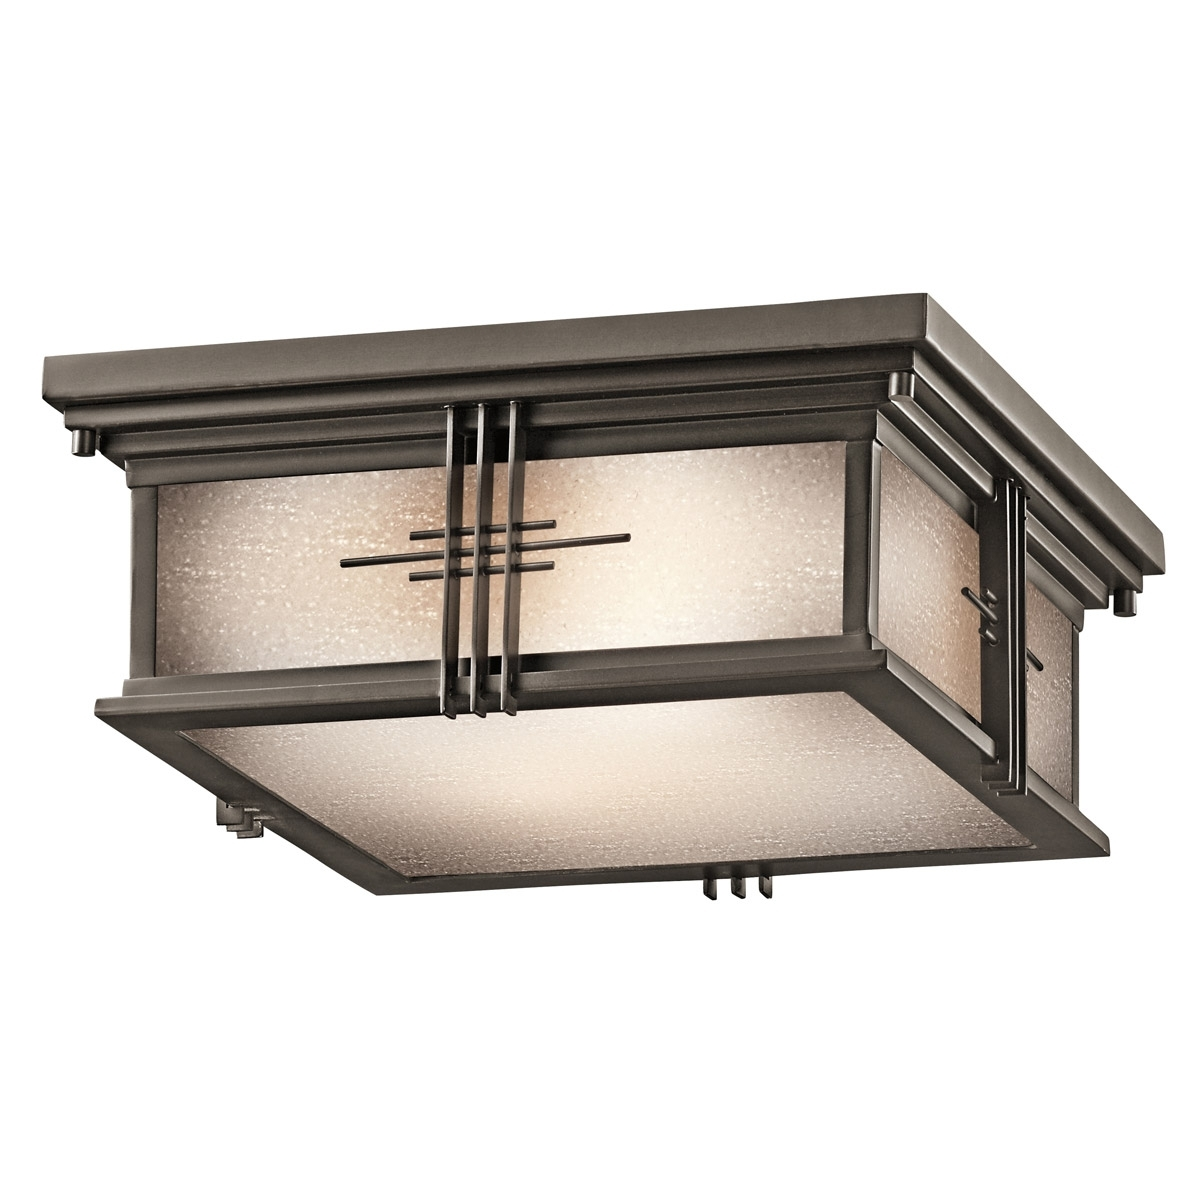 49164oz Portman Square Outdoor Flush Mount Ceiling Fixture In Most Up To Date Craftsman Outdoor Ceiling Lights (View 5 of 20)